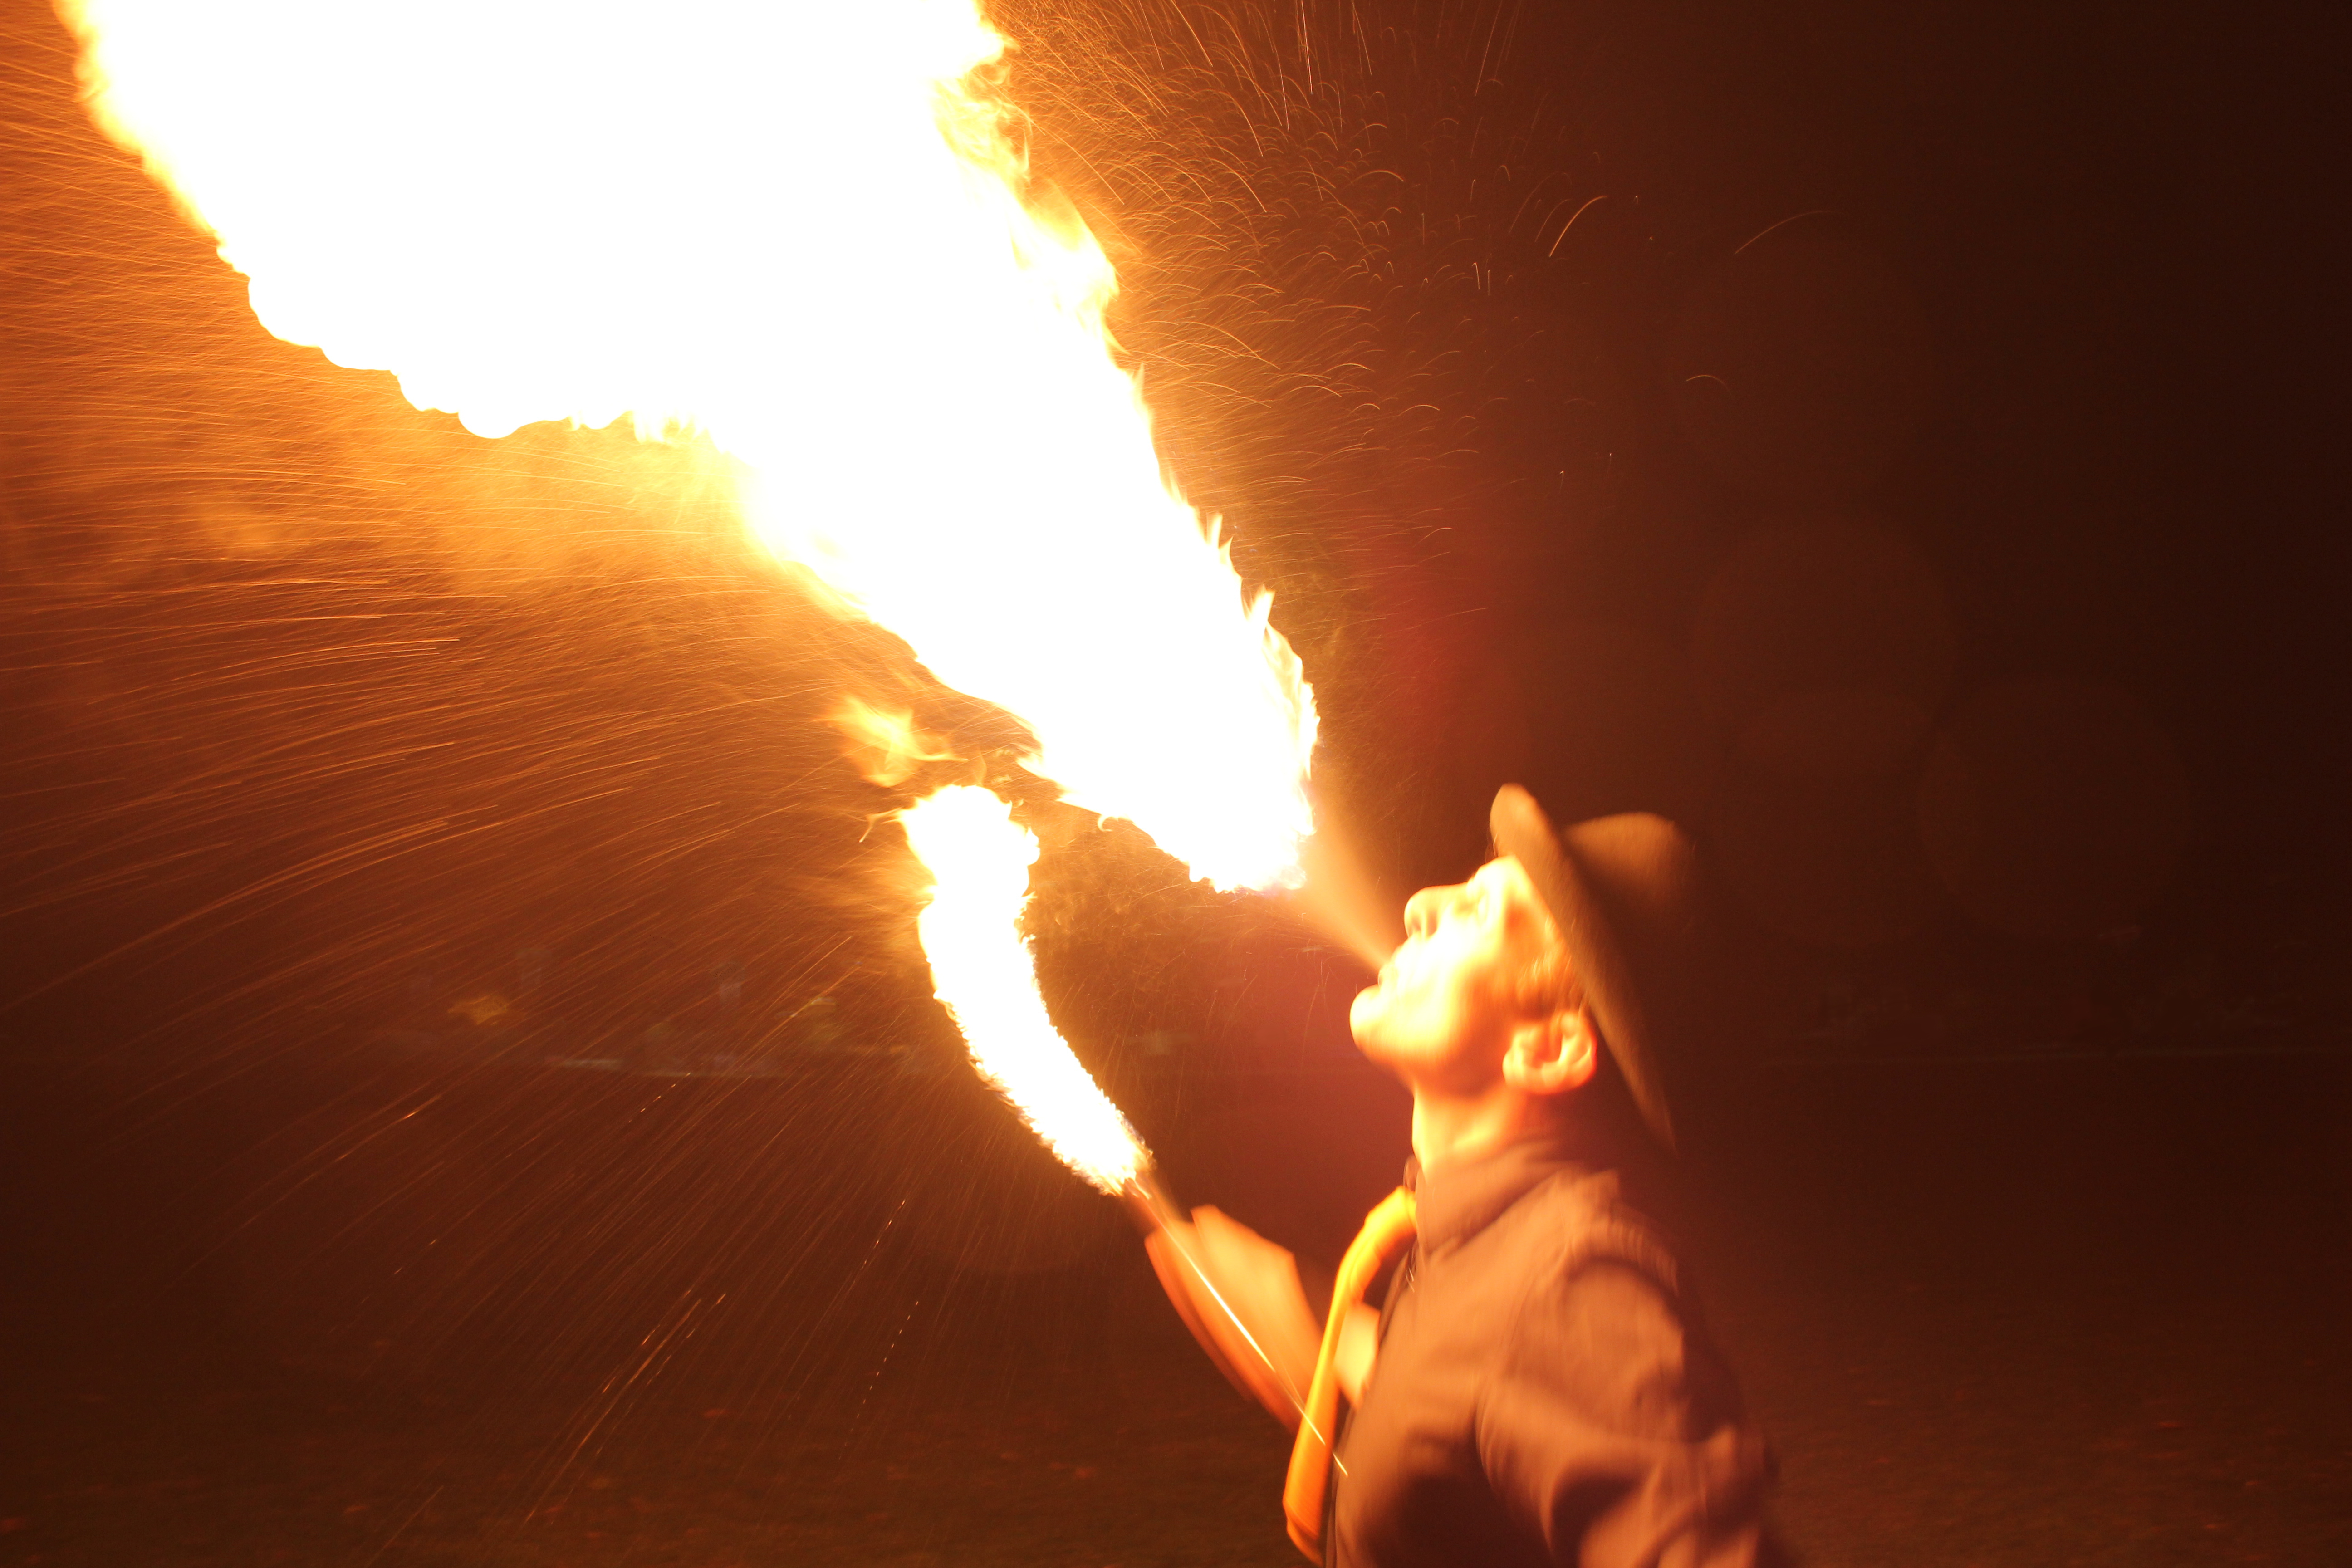 Fire breathing, jugglingben